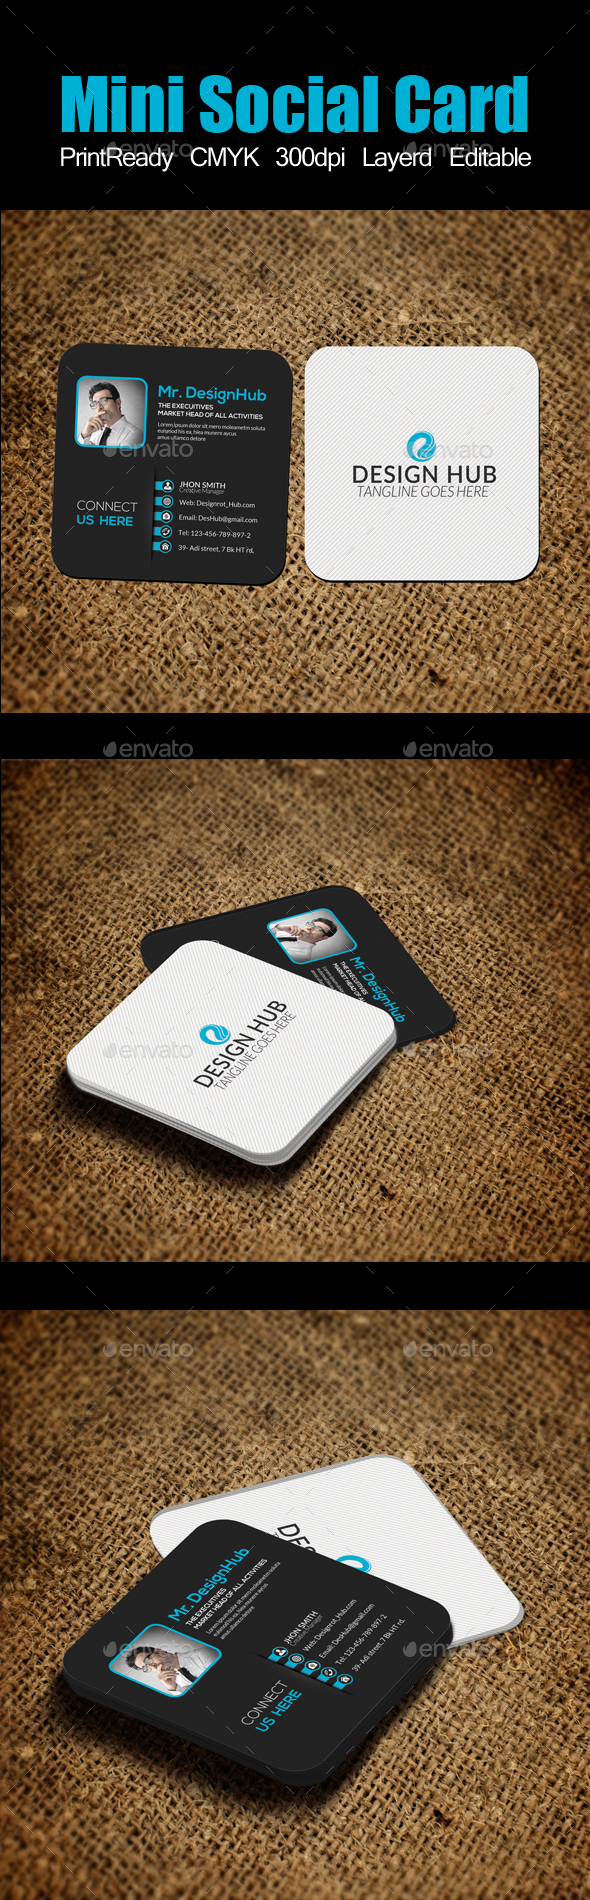 Mini Social Card Template